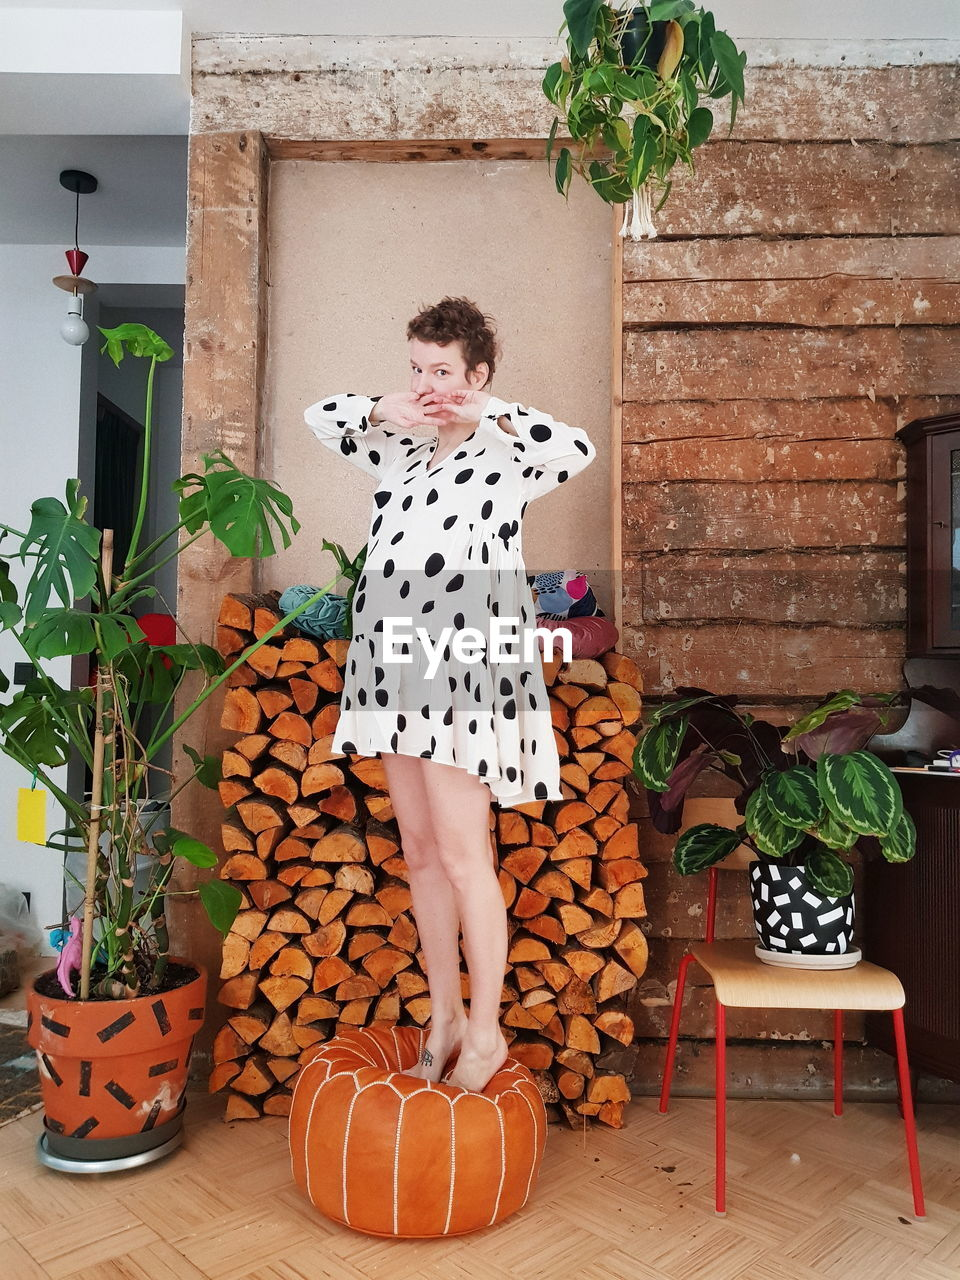 MIDSECTION OF WOMAN STANDING BY POTTED PLANTS